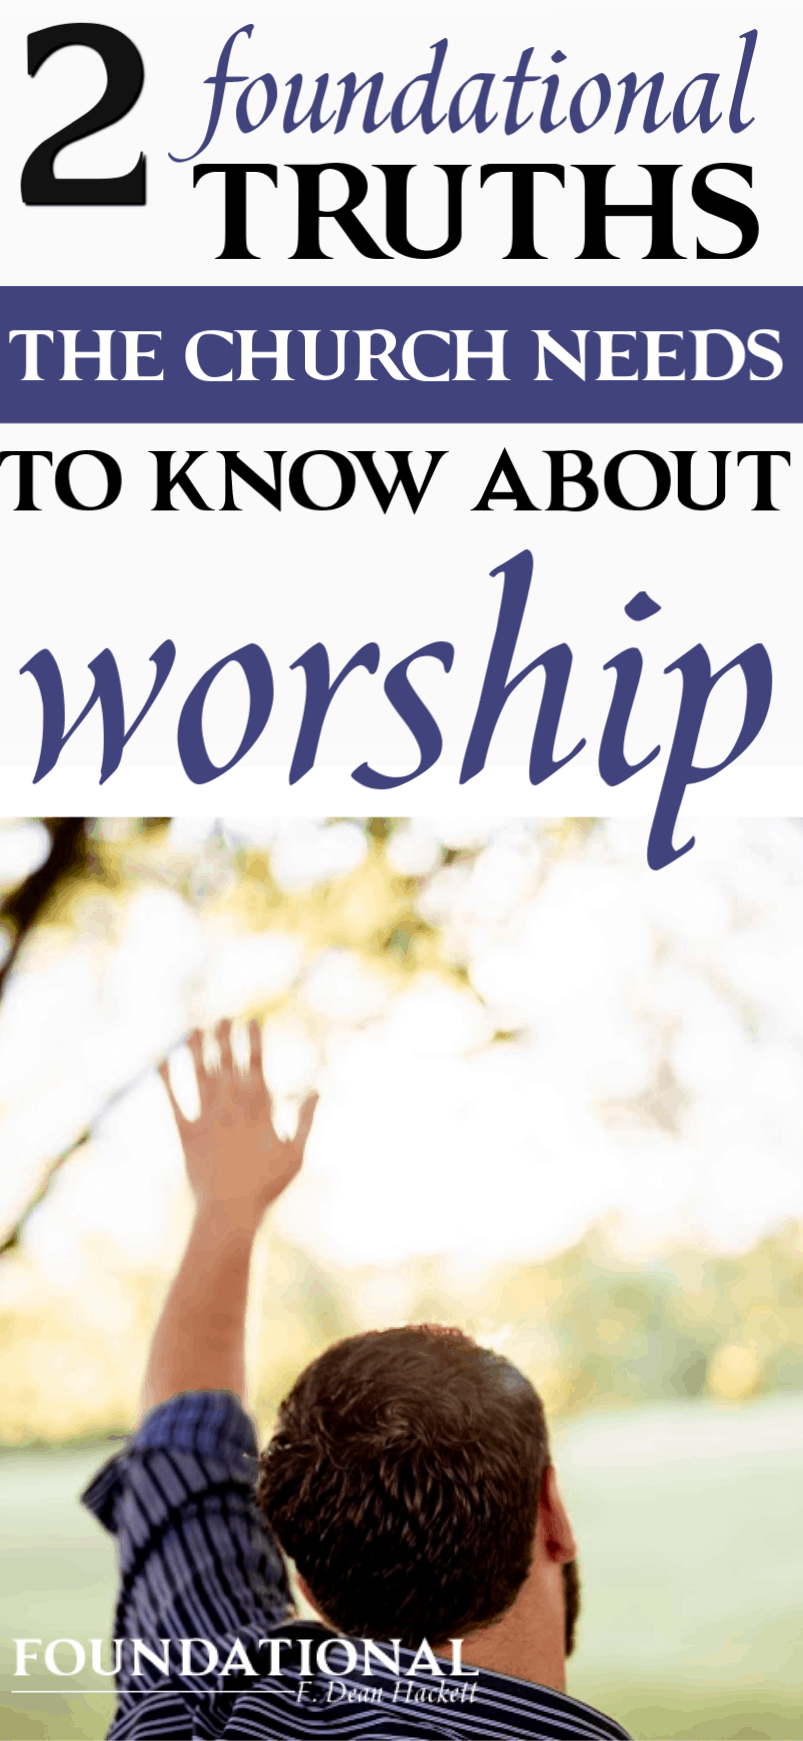 It's time to take worship back to the basics and learn 2 foundational truths the church needs to know about worship. Found out what they are in this week's podcast! #foundational #worship #worshiping #worshipers